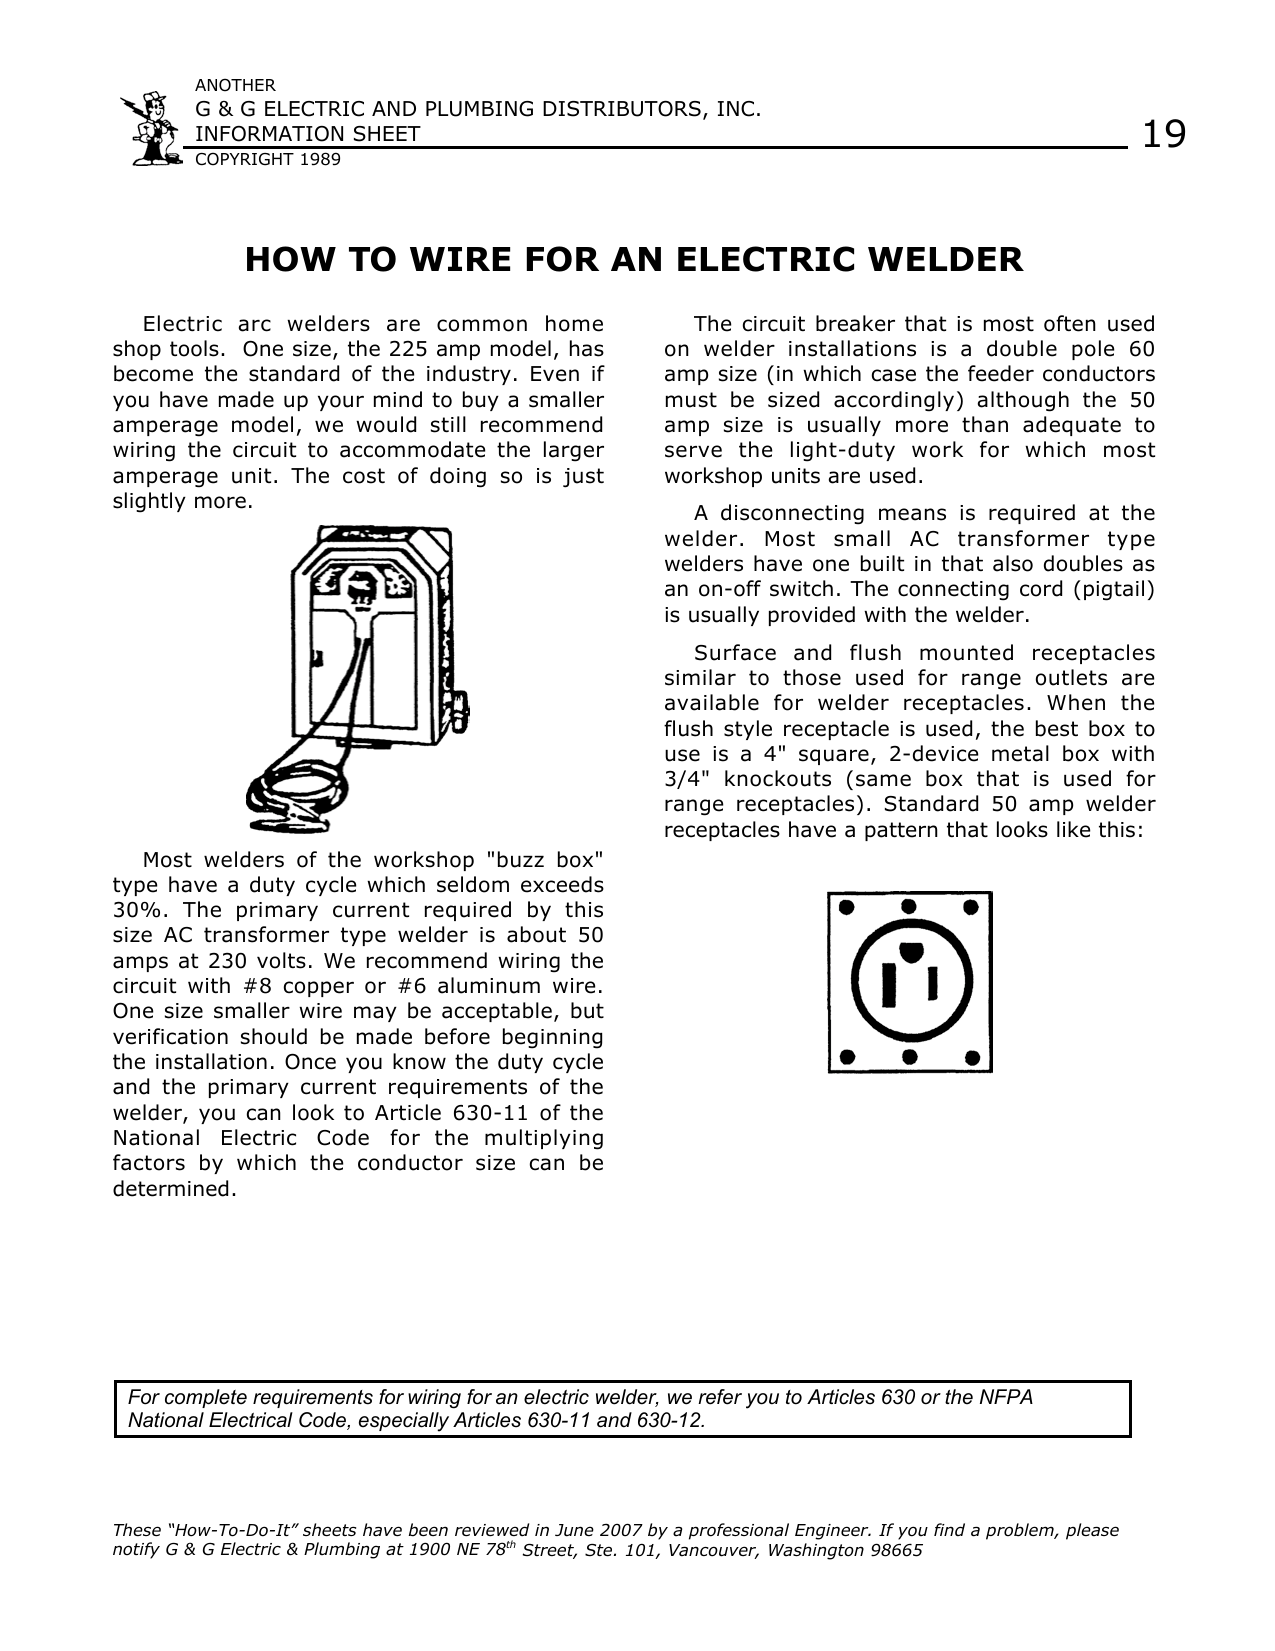 How To Wire For An Electric Welder Wiring Your Shop 018613060 1 46354adf4af78933e12a5ede16d74b60